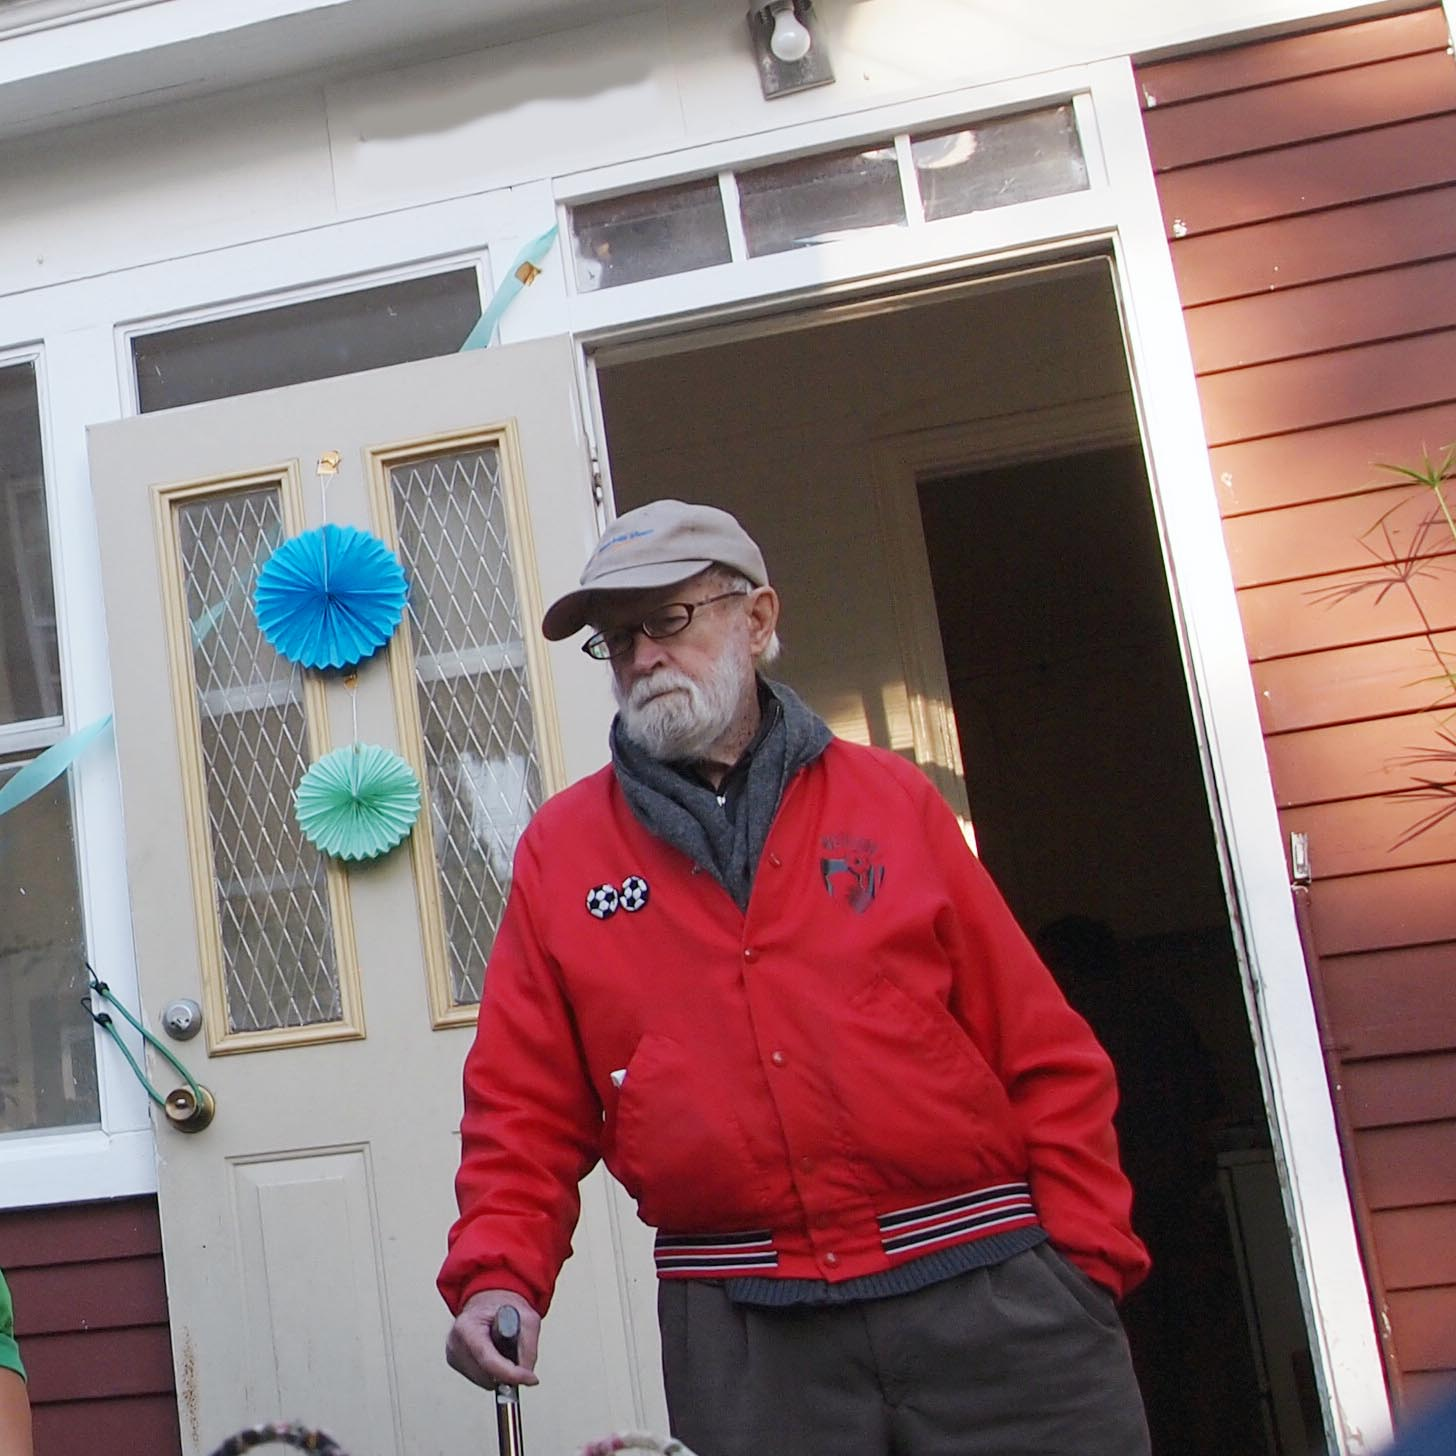 Tank wears a red soccer warm-up jacket, grey scarf, and baseball cap. He leans on the cane in his right hand just outside the open door of a house festooned with decorations.